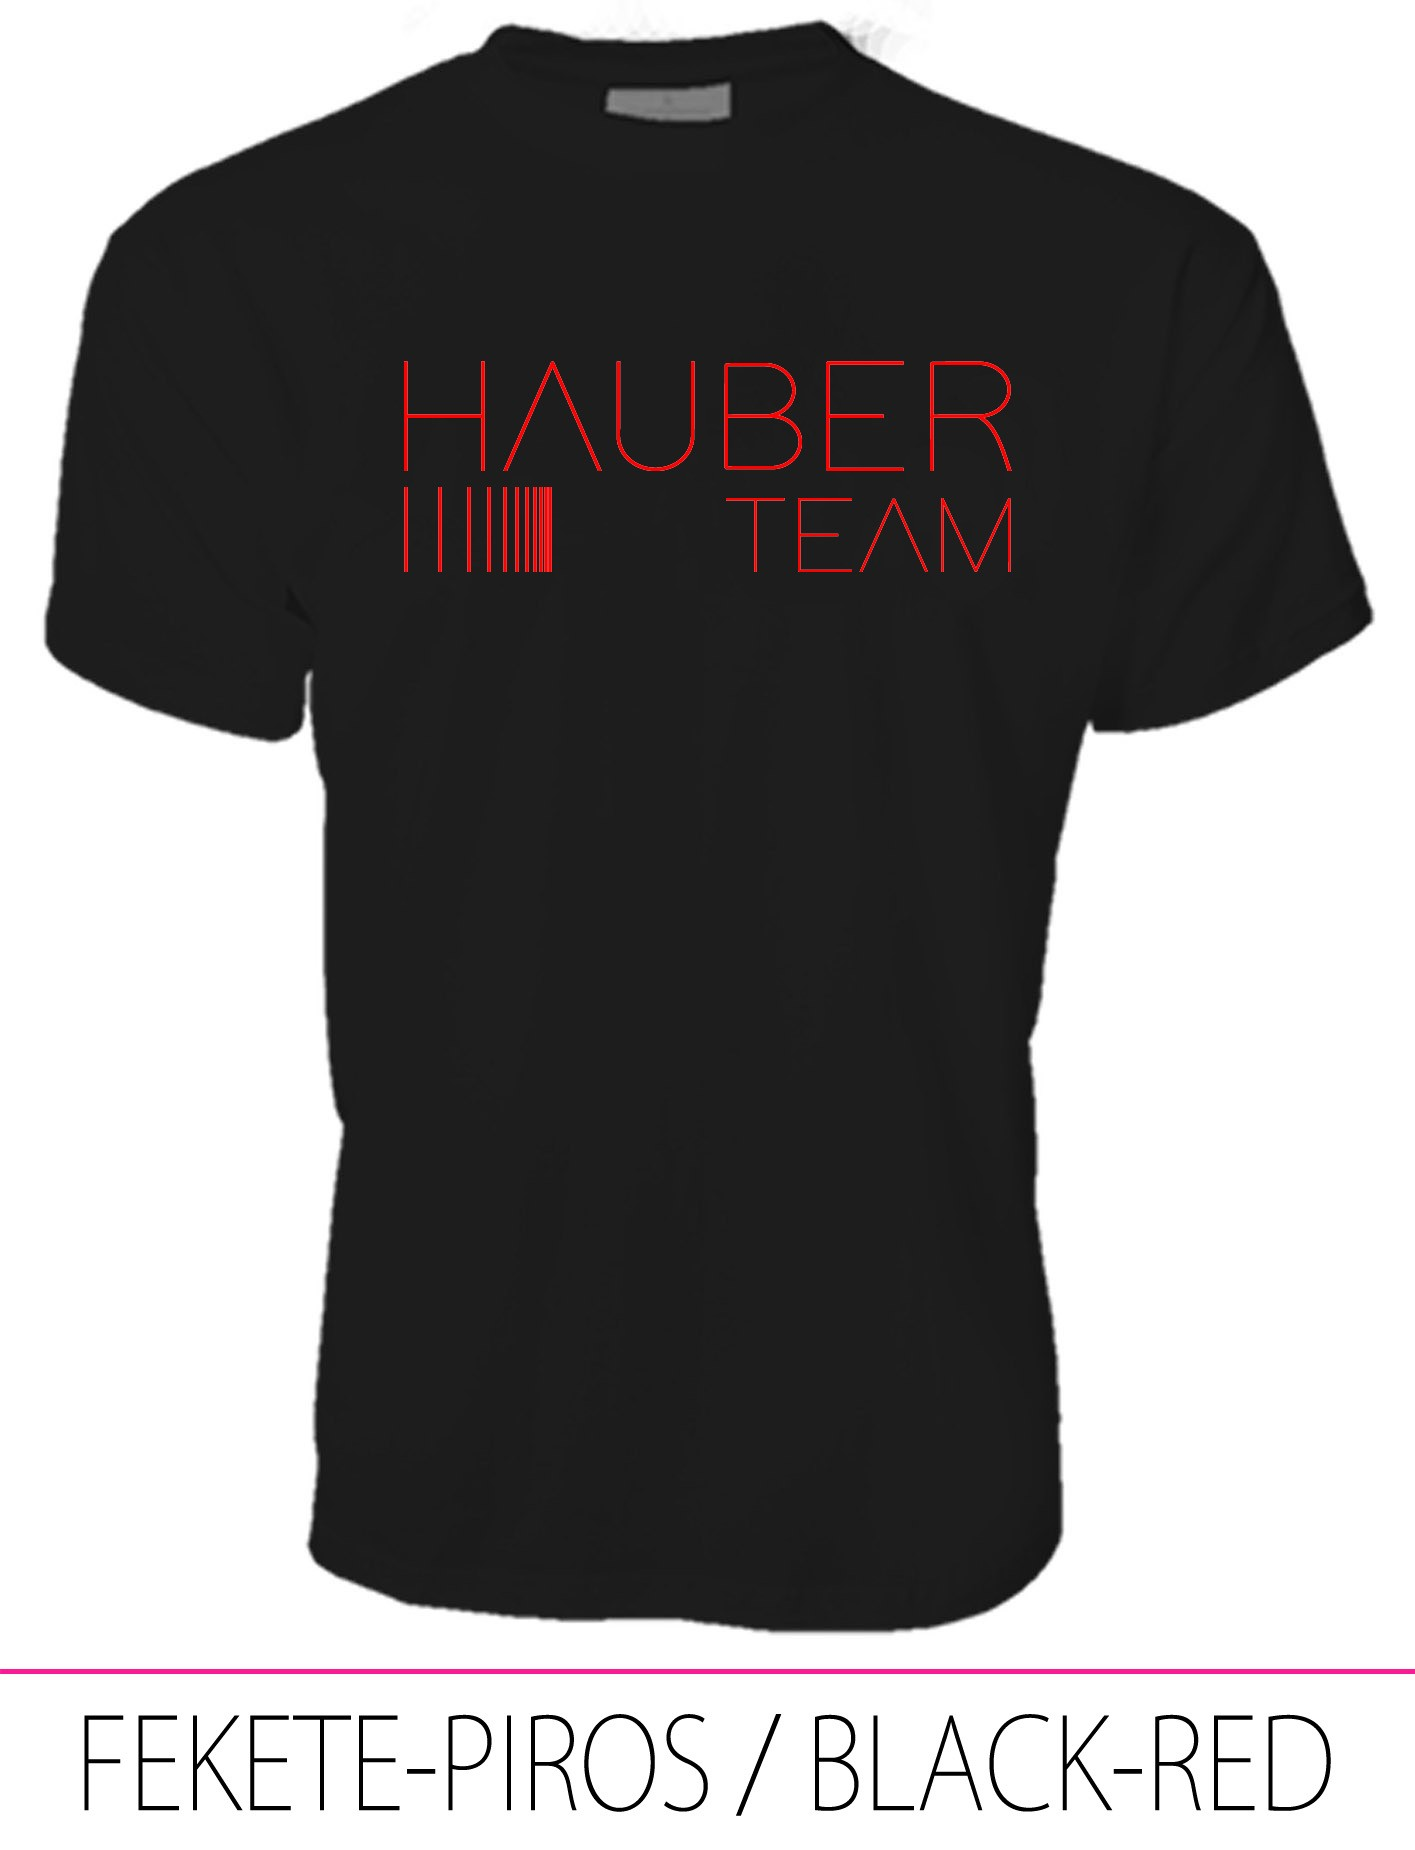 MEN CREW NECK T-SHIRT / HAUBER TEAM BLACK-RED